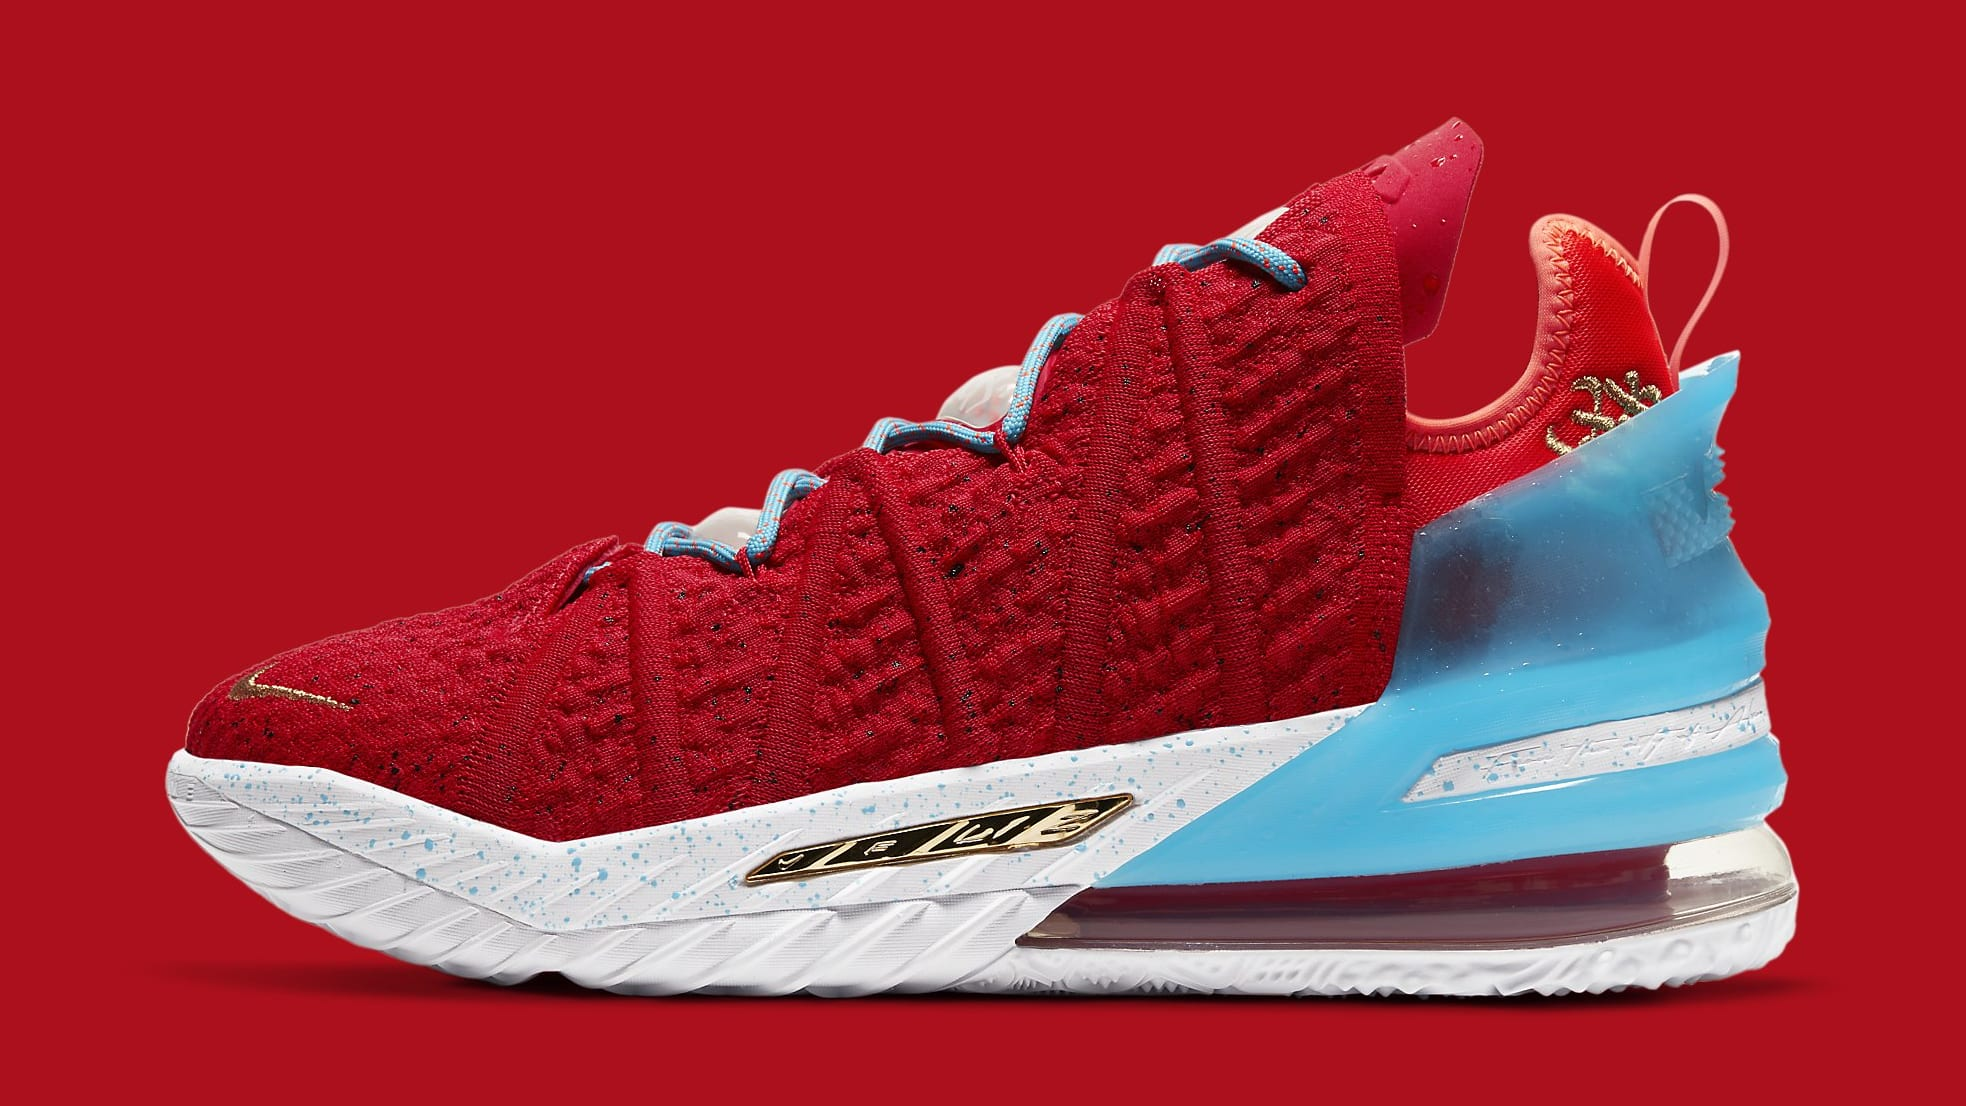 Nike LeBron 18 'Chinese New Year' CW3155-600 Lateral